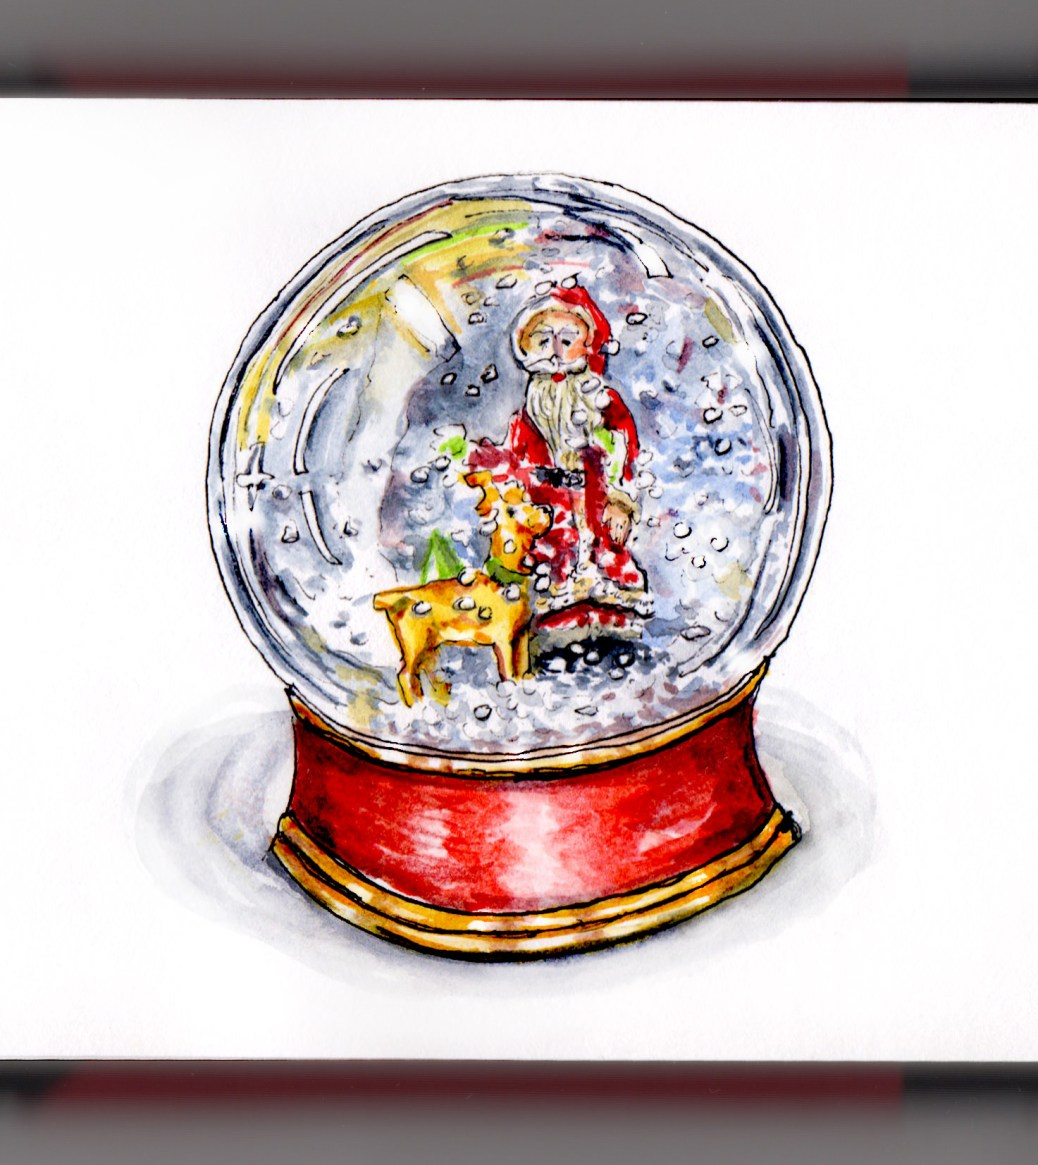 Day 21 - Santa and Reindeer Snow Globe with red and gold base watercolor sketch